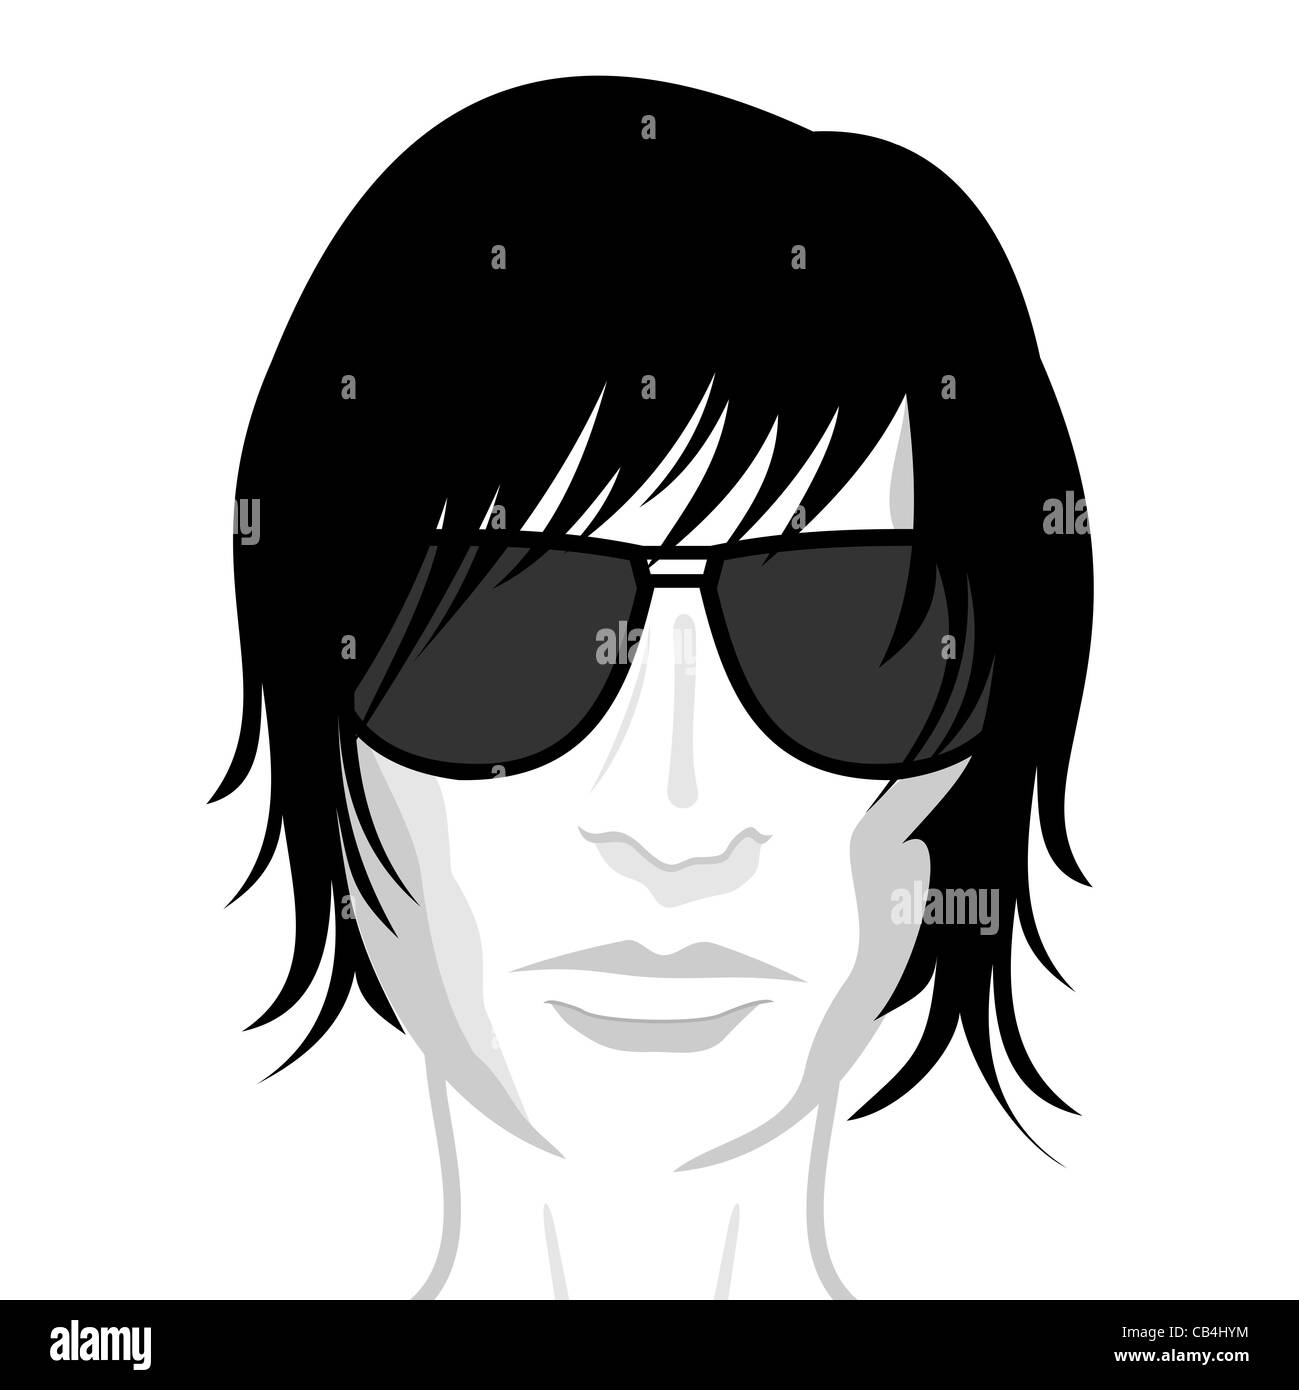 Illustration of face young man, design element - vector - Stock Image